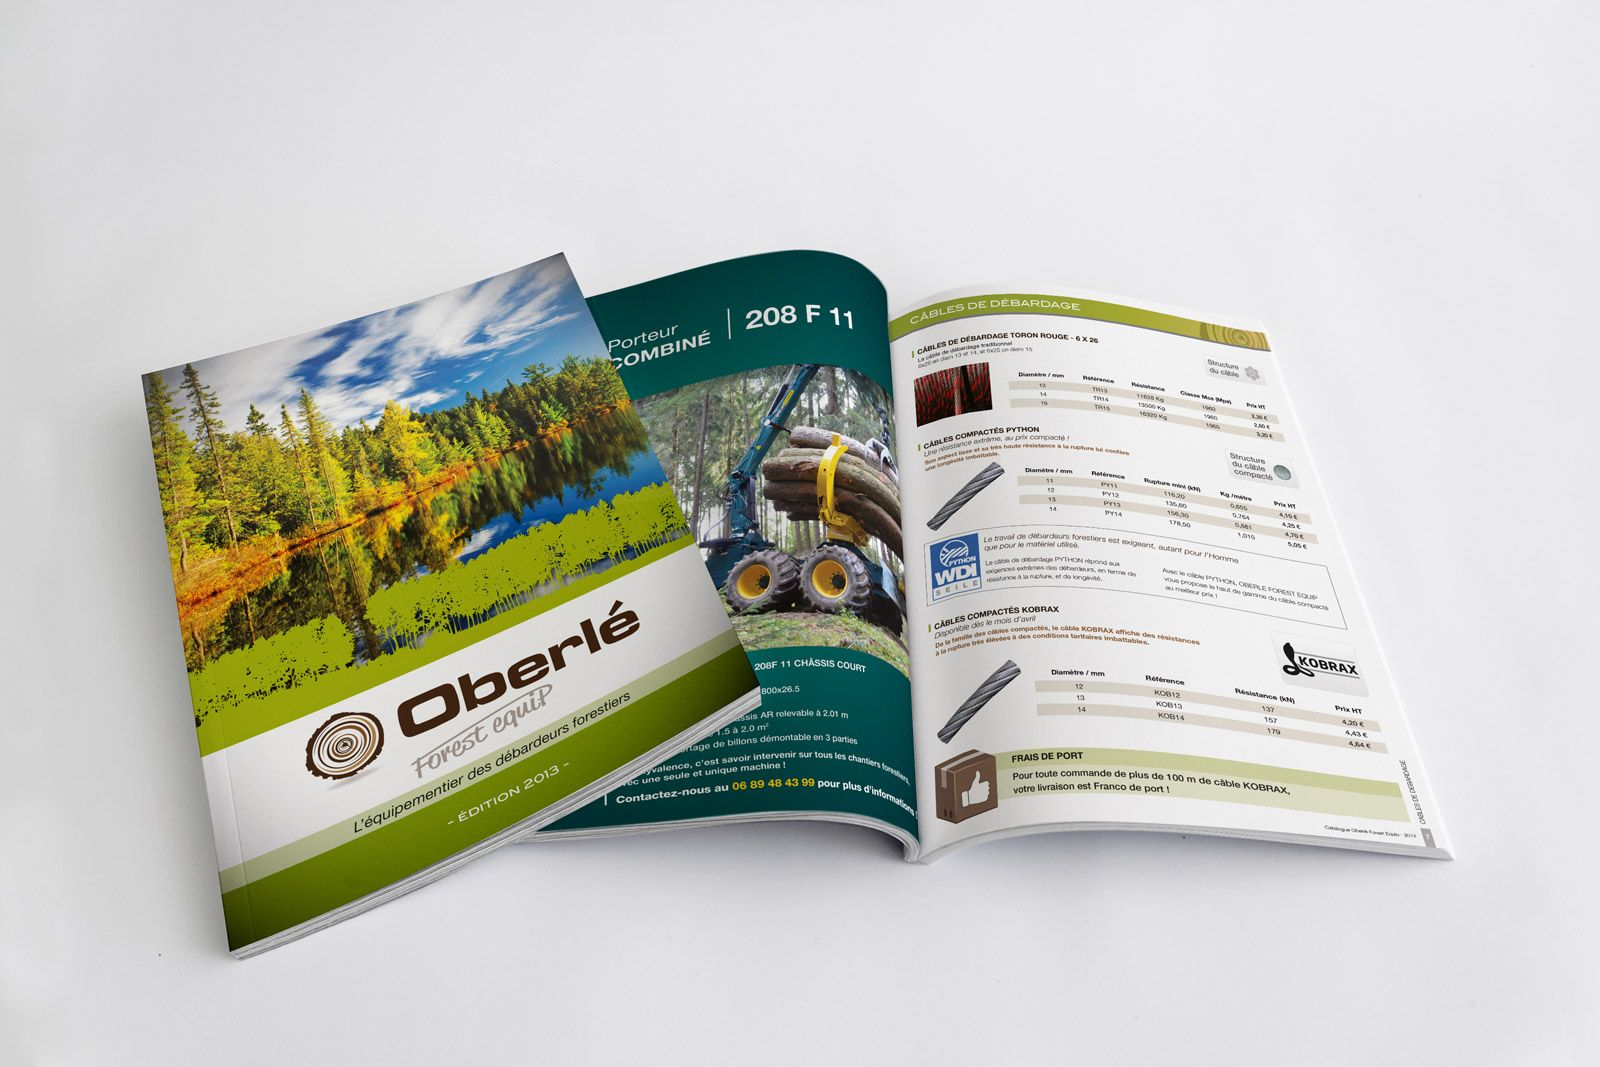 Oberle catalogue 2013